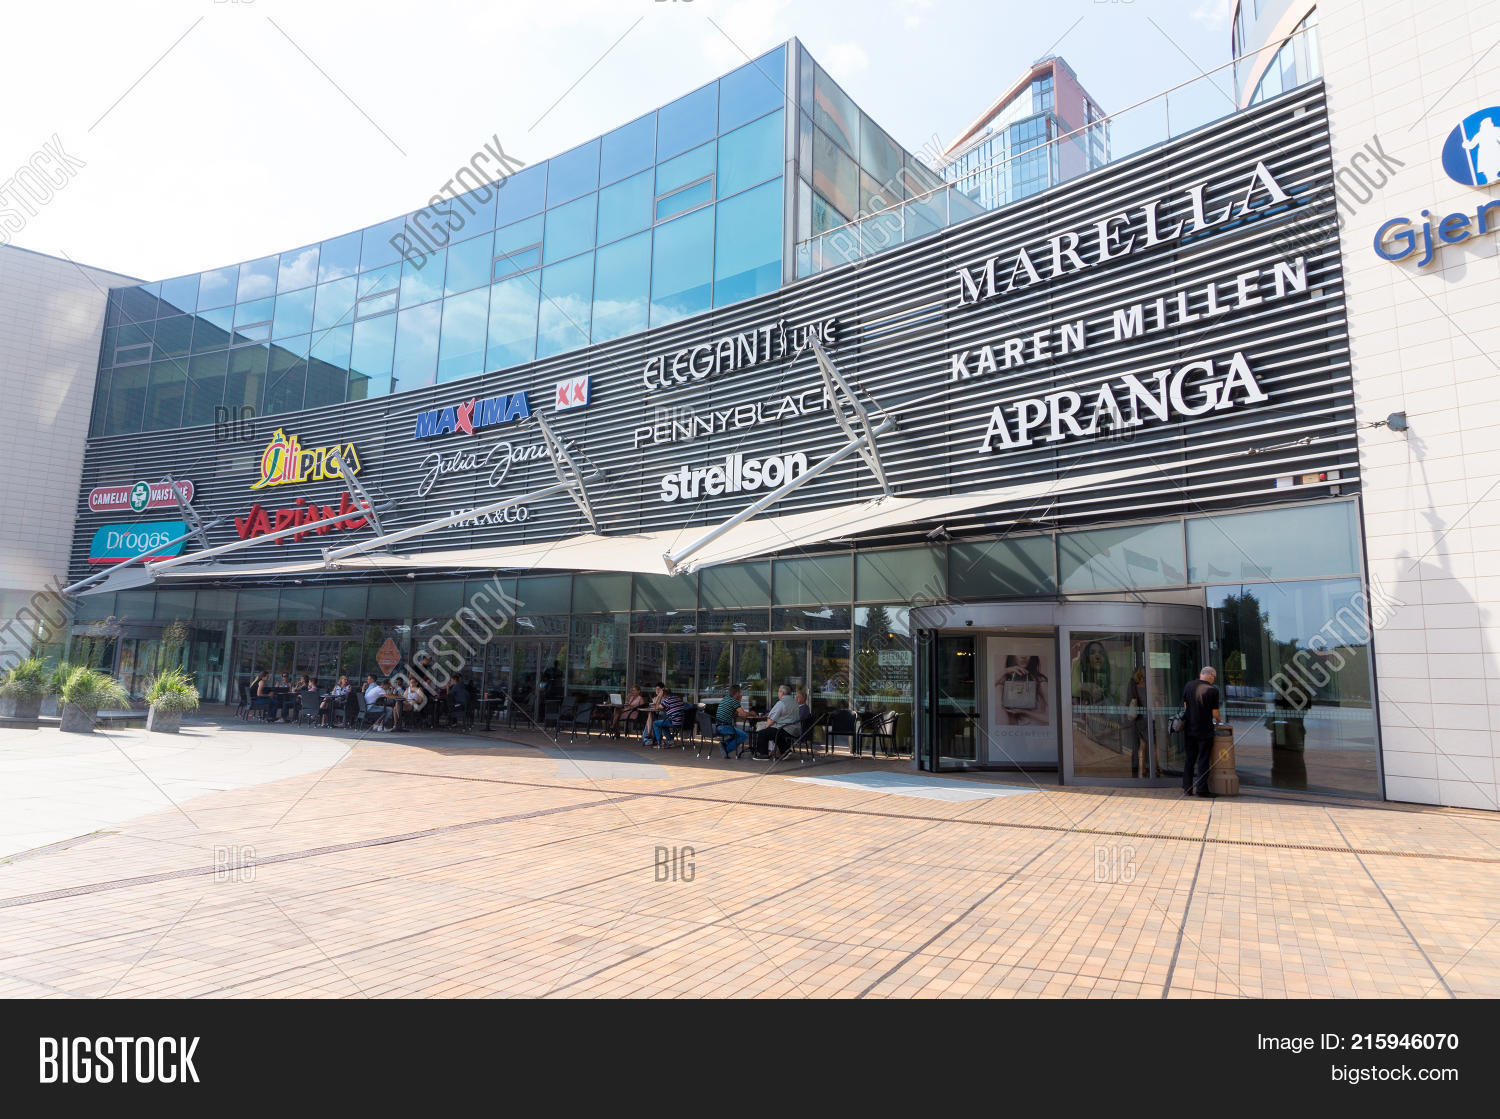 ecf6184dc VILNIUS LITHUANIA - AUGUST 29 2016: The front door of Europa shopping mall  in Vilnius